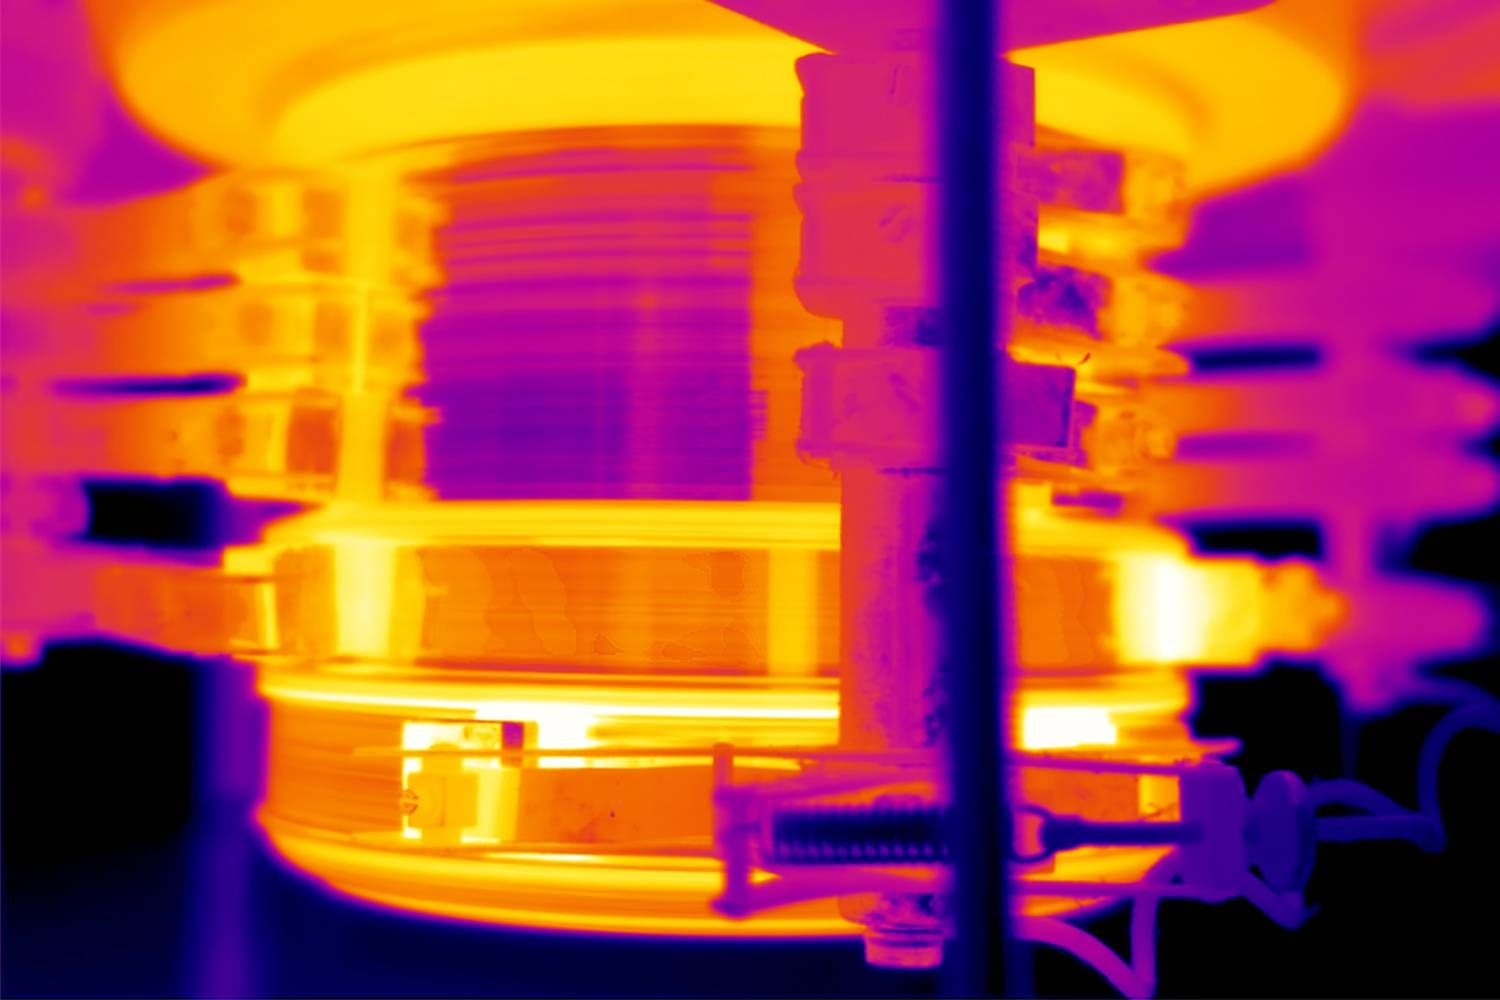 thermal_image_industrial_thermography.jpg